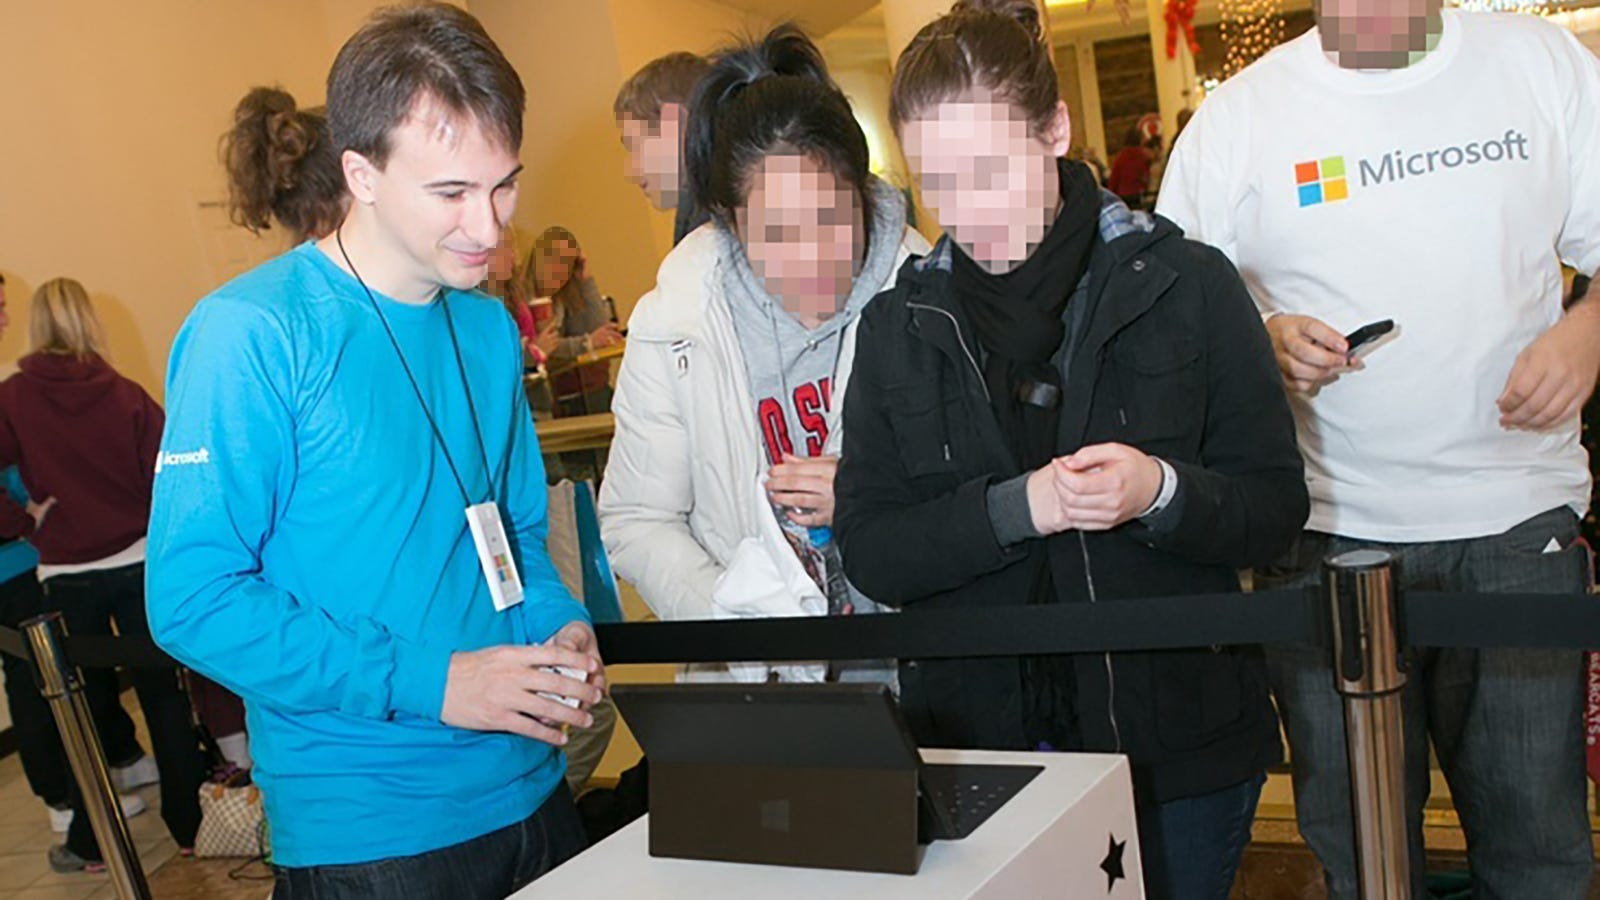 The author, standing next to two people looking at a Surface RT.